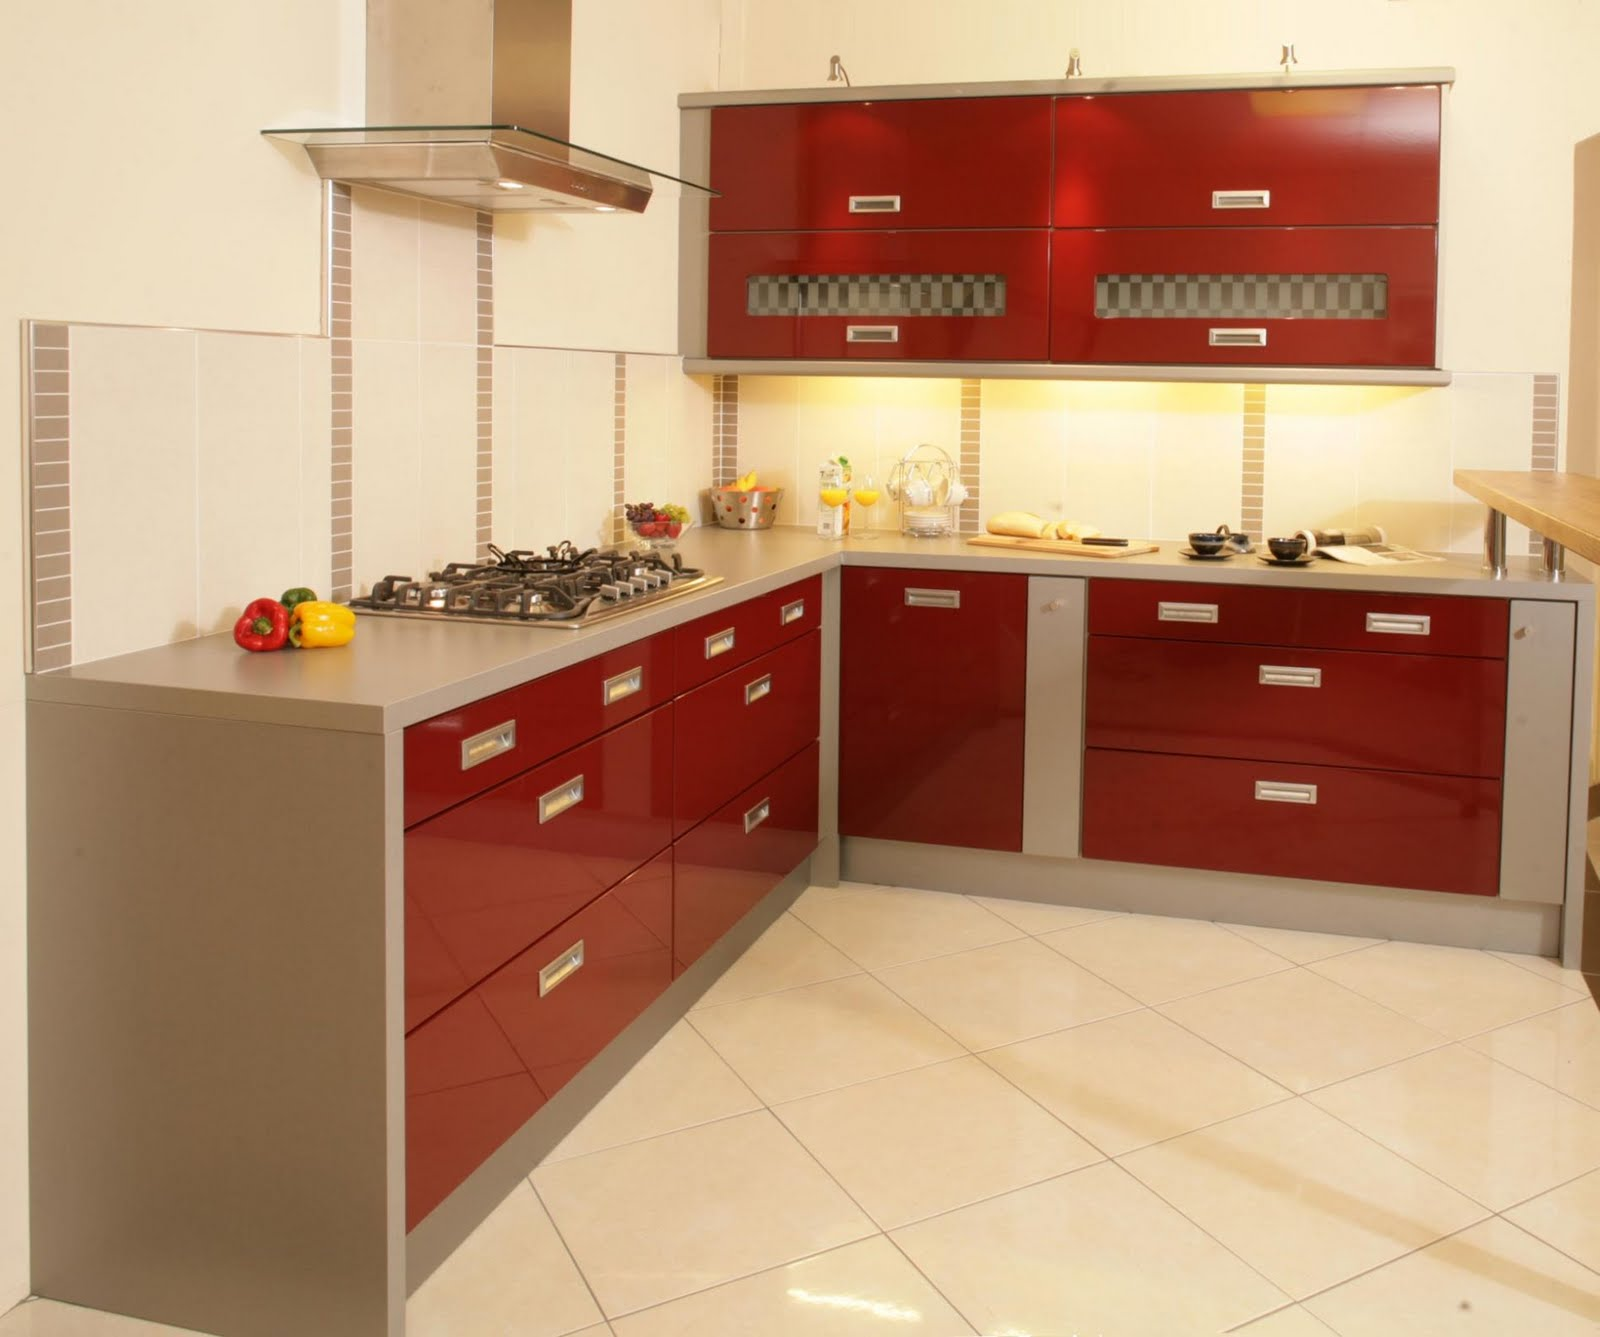 kitchen cabinets kitchen design ideas basic kitchen cabinets Kitchen Cabinets Kitchen Design Ideas